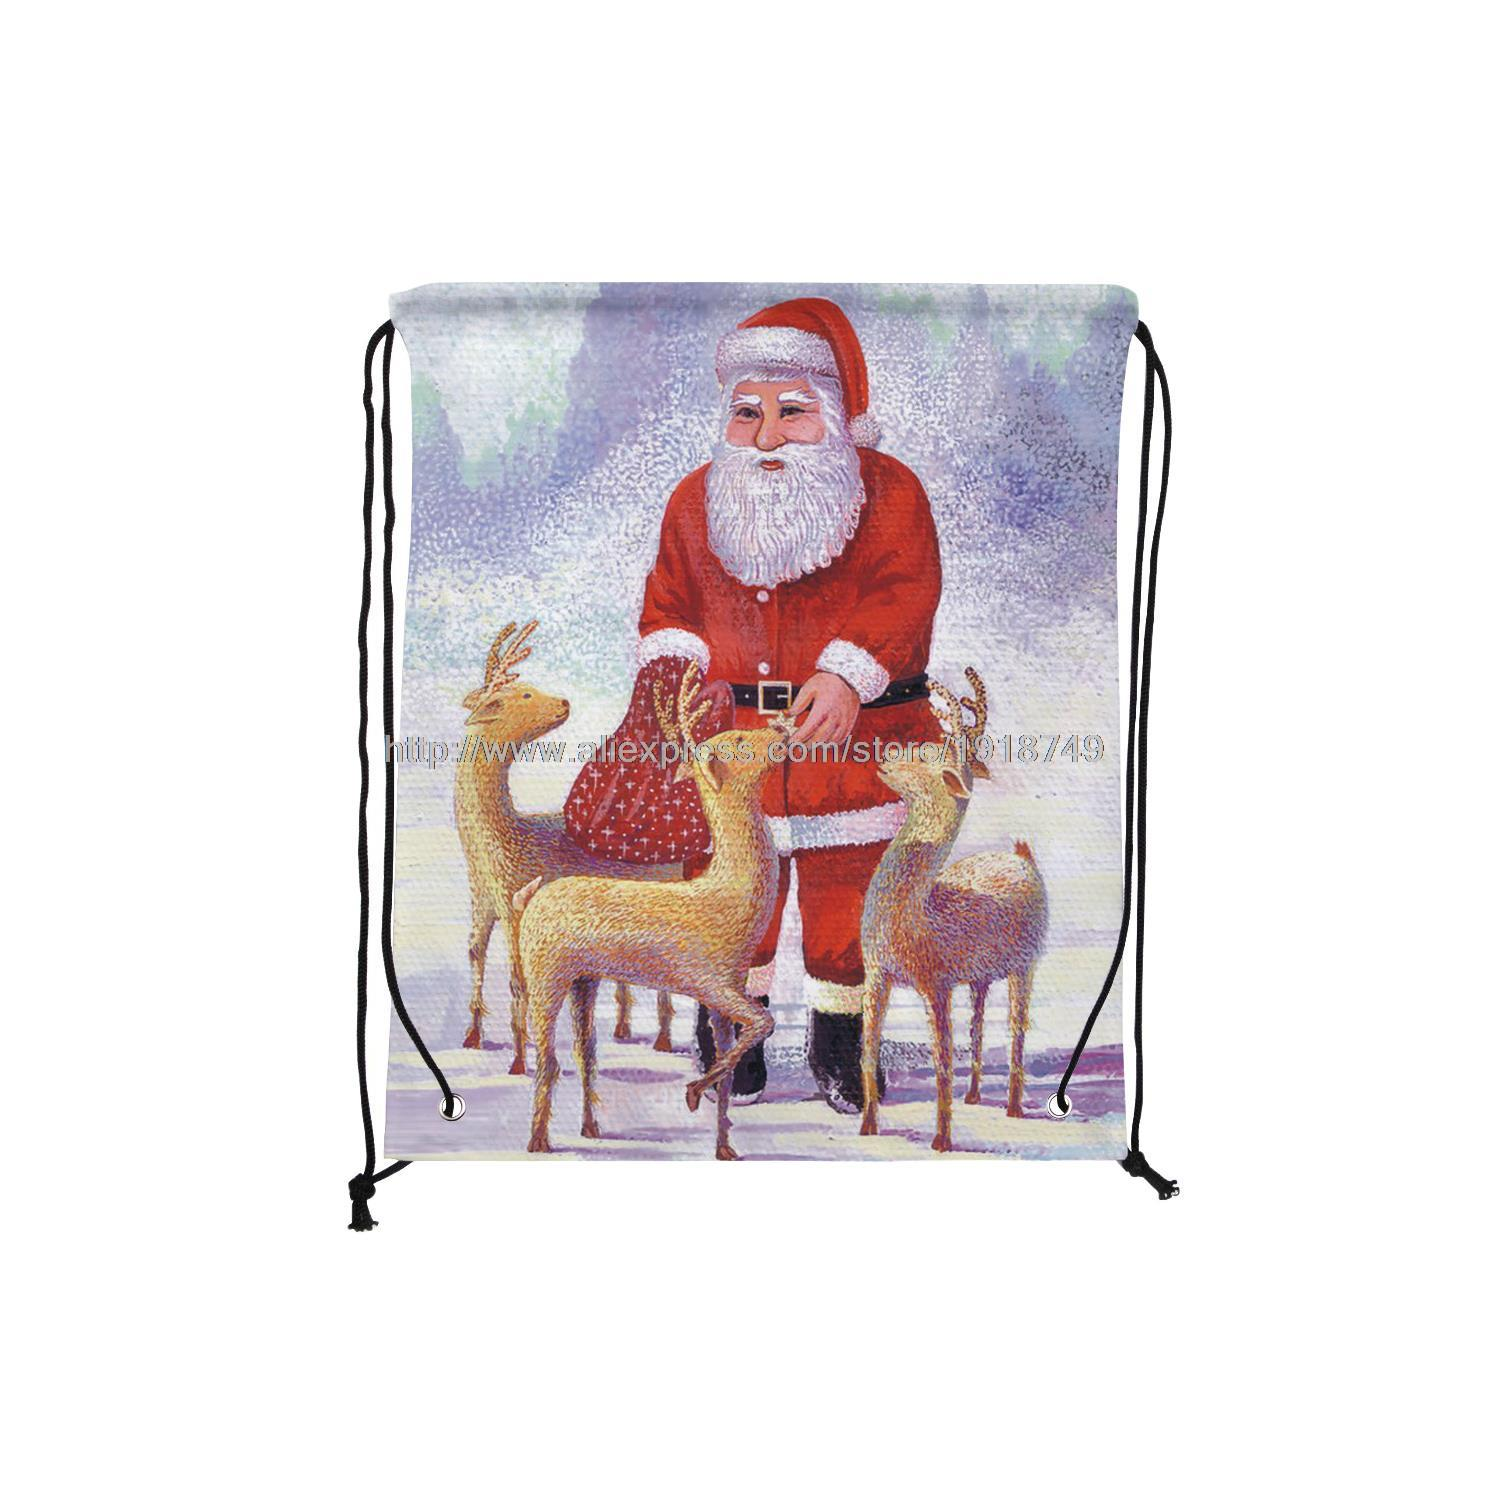 four pcs/lot father christmas with antelope in winter printed custom drawstring bags xmas decoration white shopping backpack